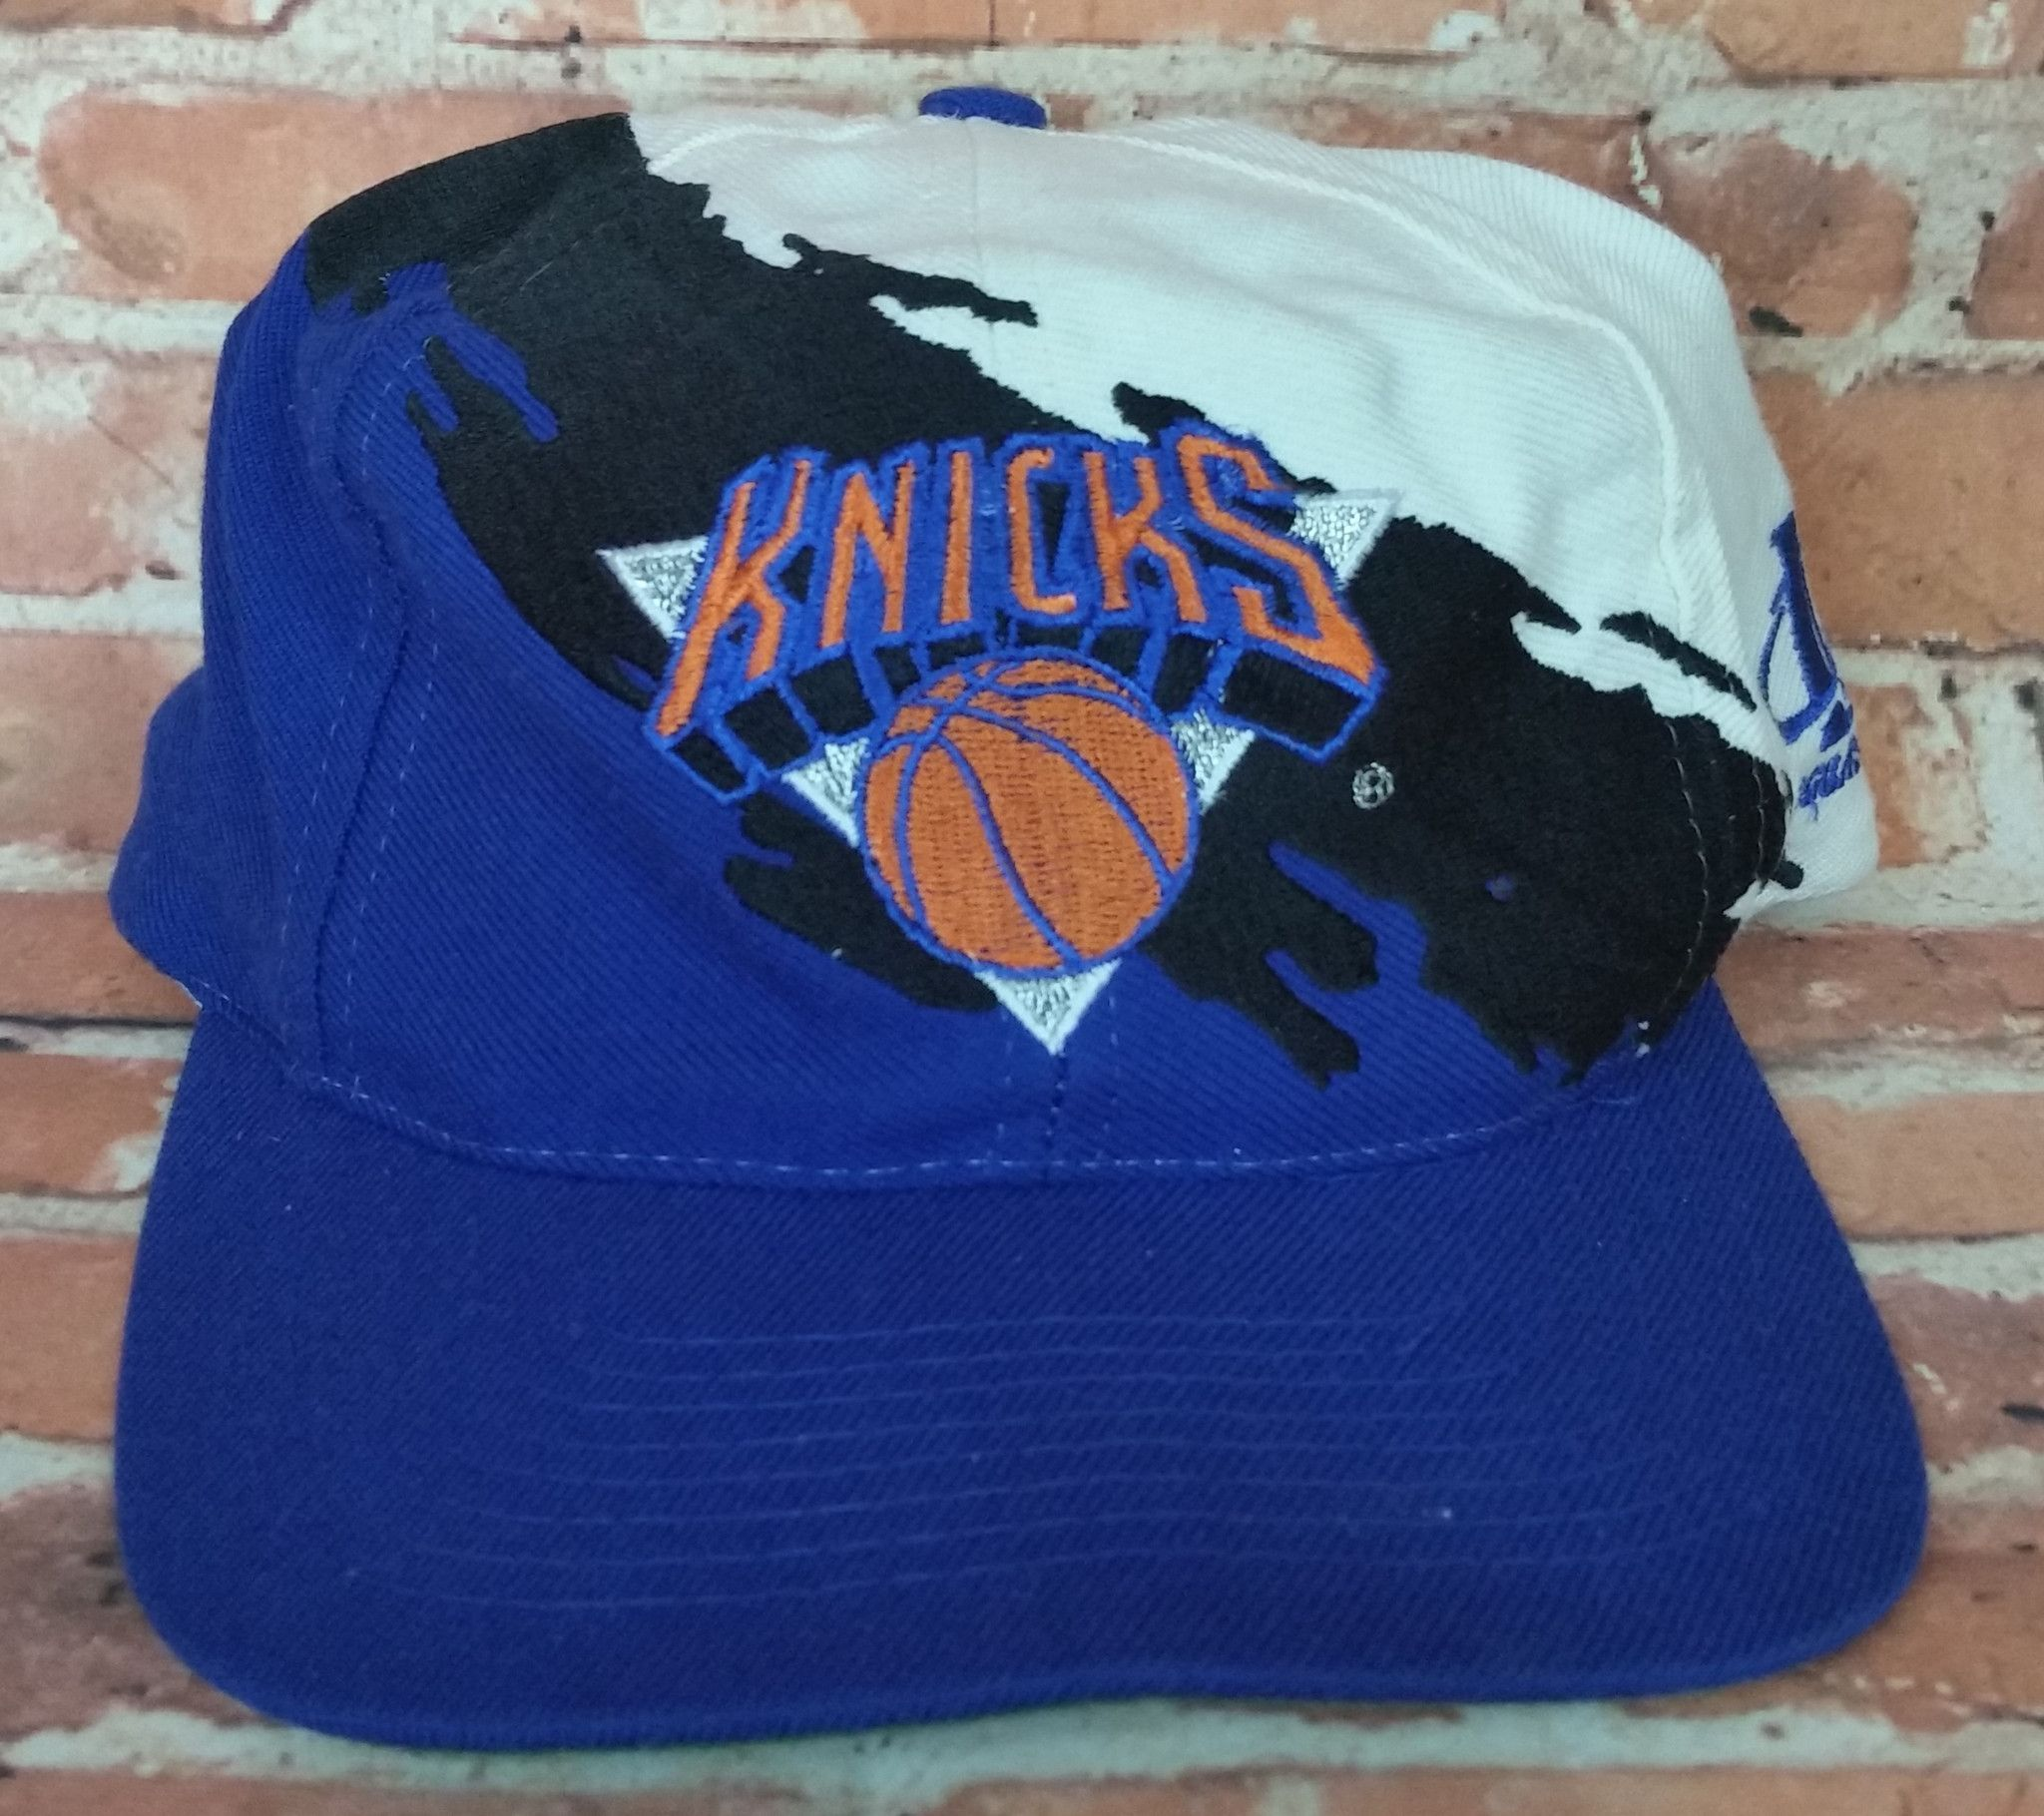 d85dbf64fdd62 New York Knicks Vintage Snapback Logo Athletic Splash Hat NBA Starter Rare  Cap